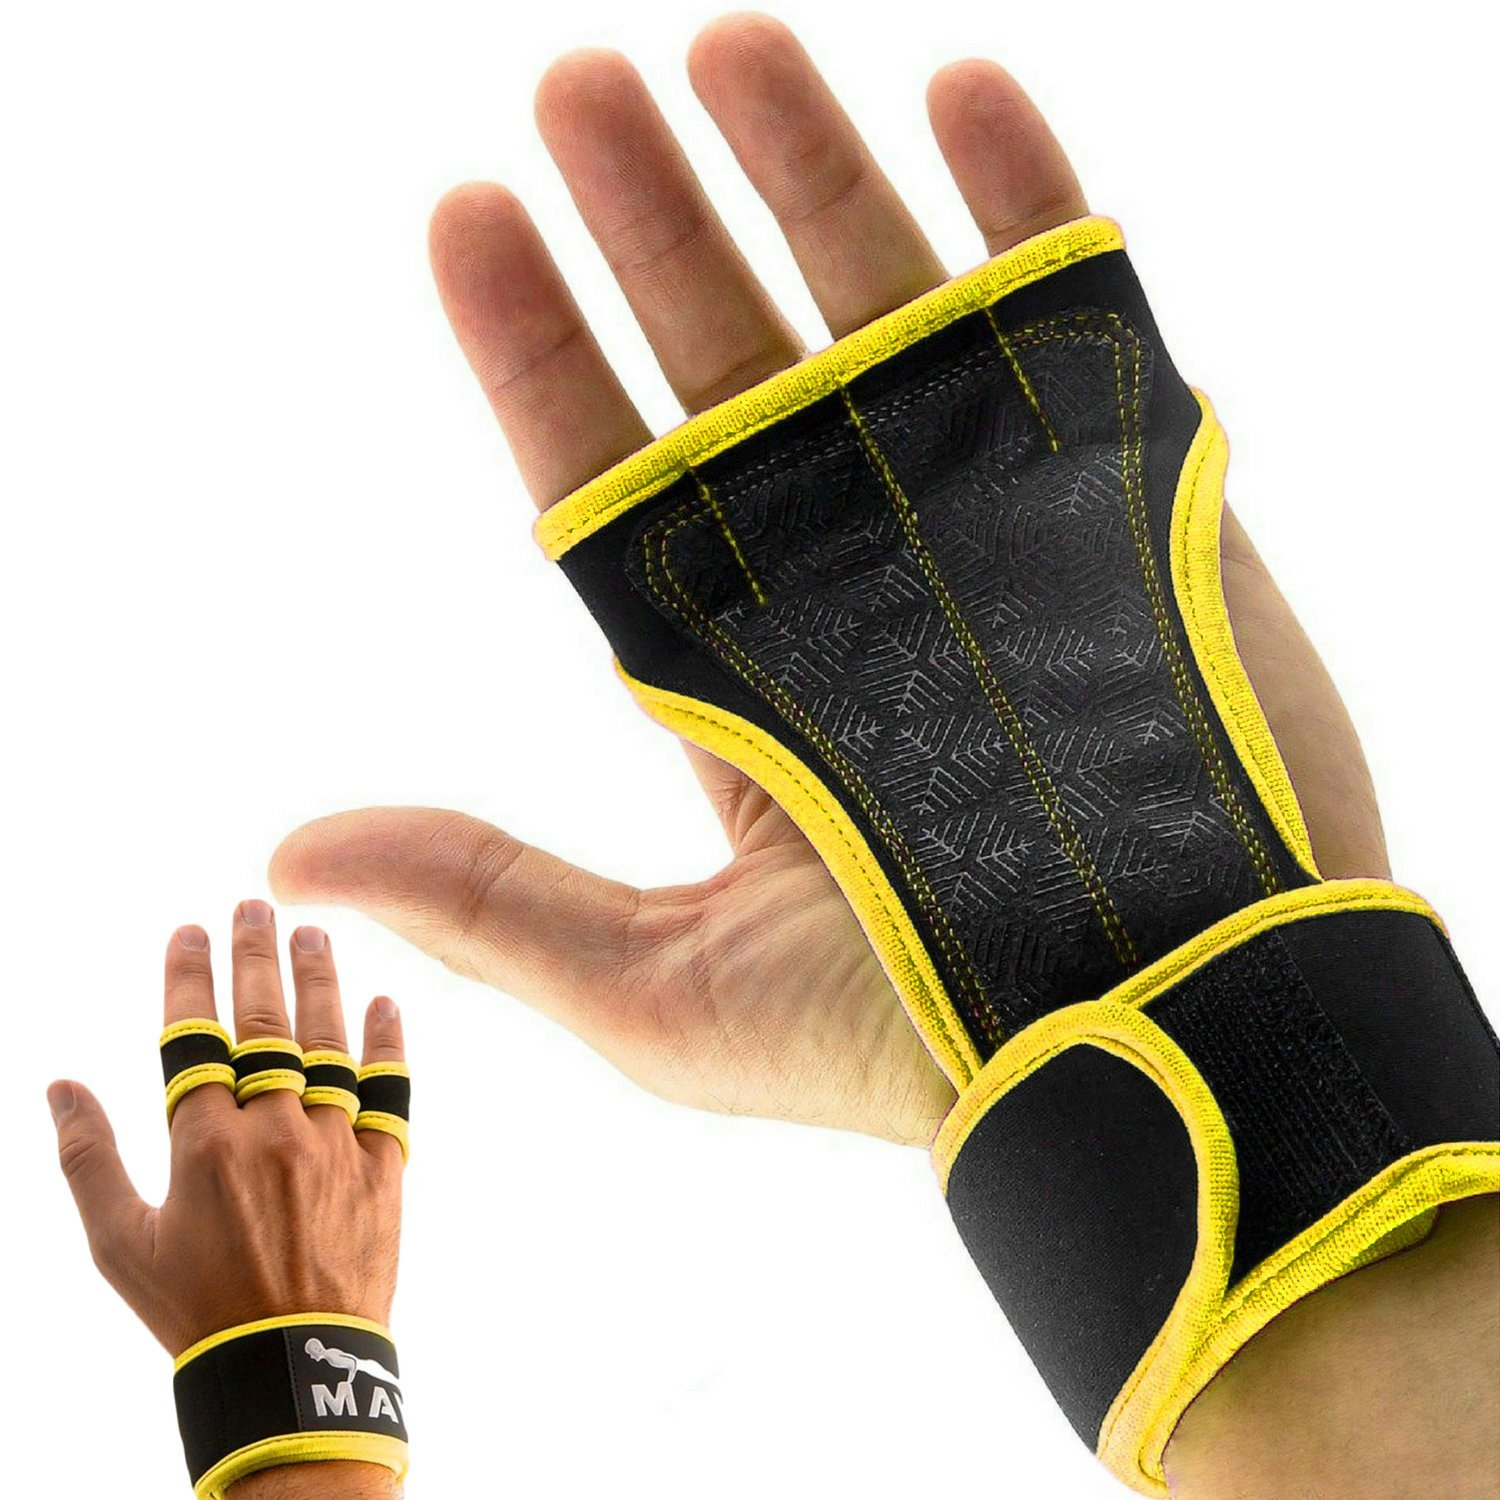 Mava Crossfit Gloves: 5 Best Crossfit Gloves For Pull Ups (2018 Updated